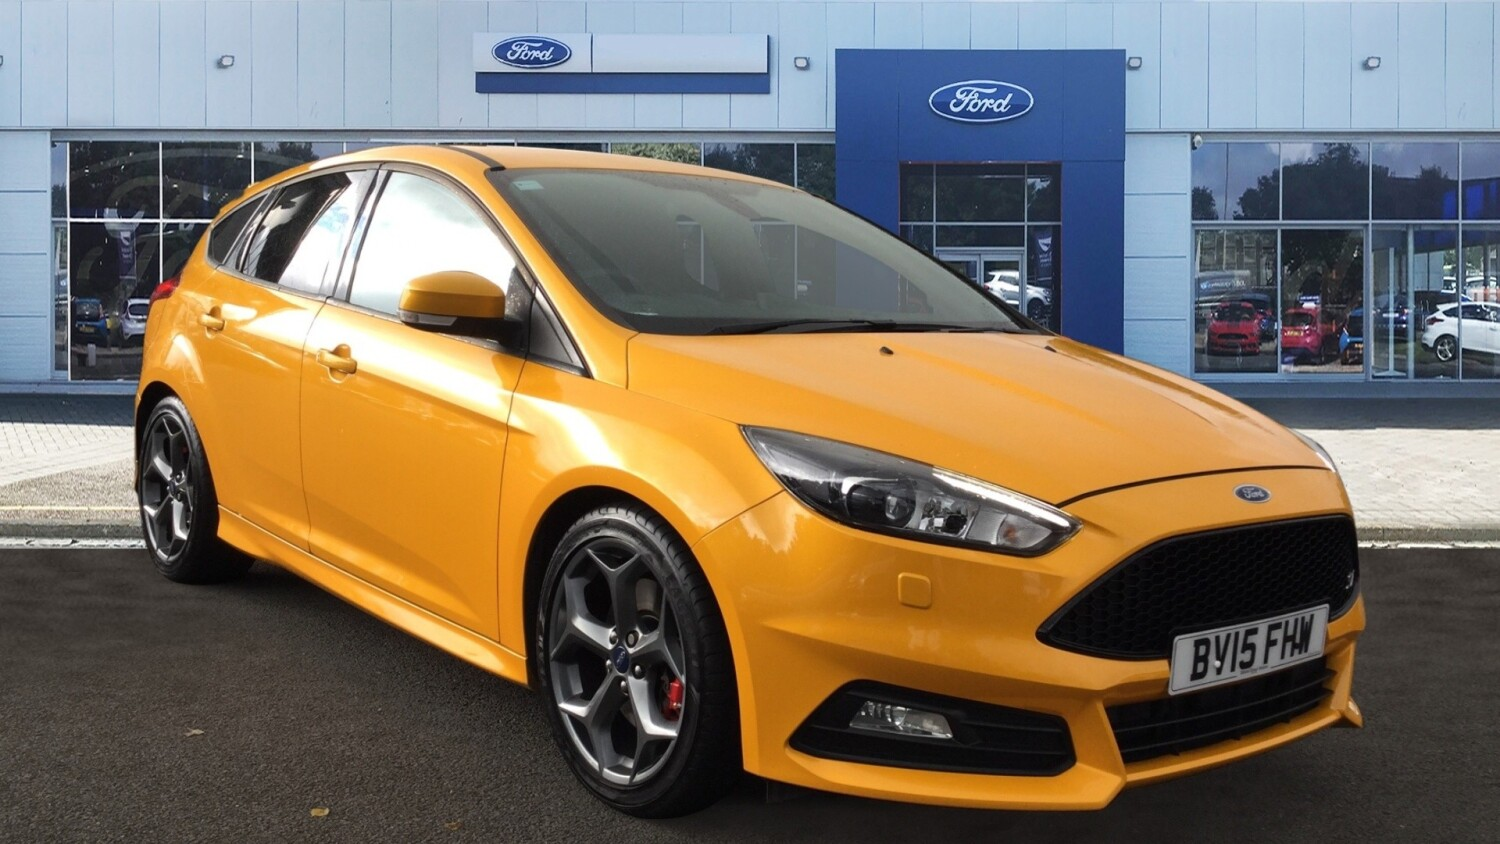 used ford focus 2 0t ecoboost st 3 5dr petrol hatchback for sale vertu volkswagen. Black Bedroom Furniture Sets. Home Design Ideas